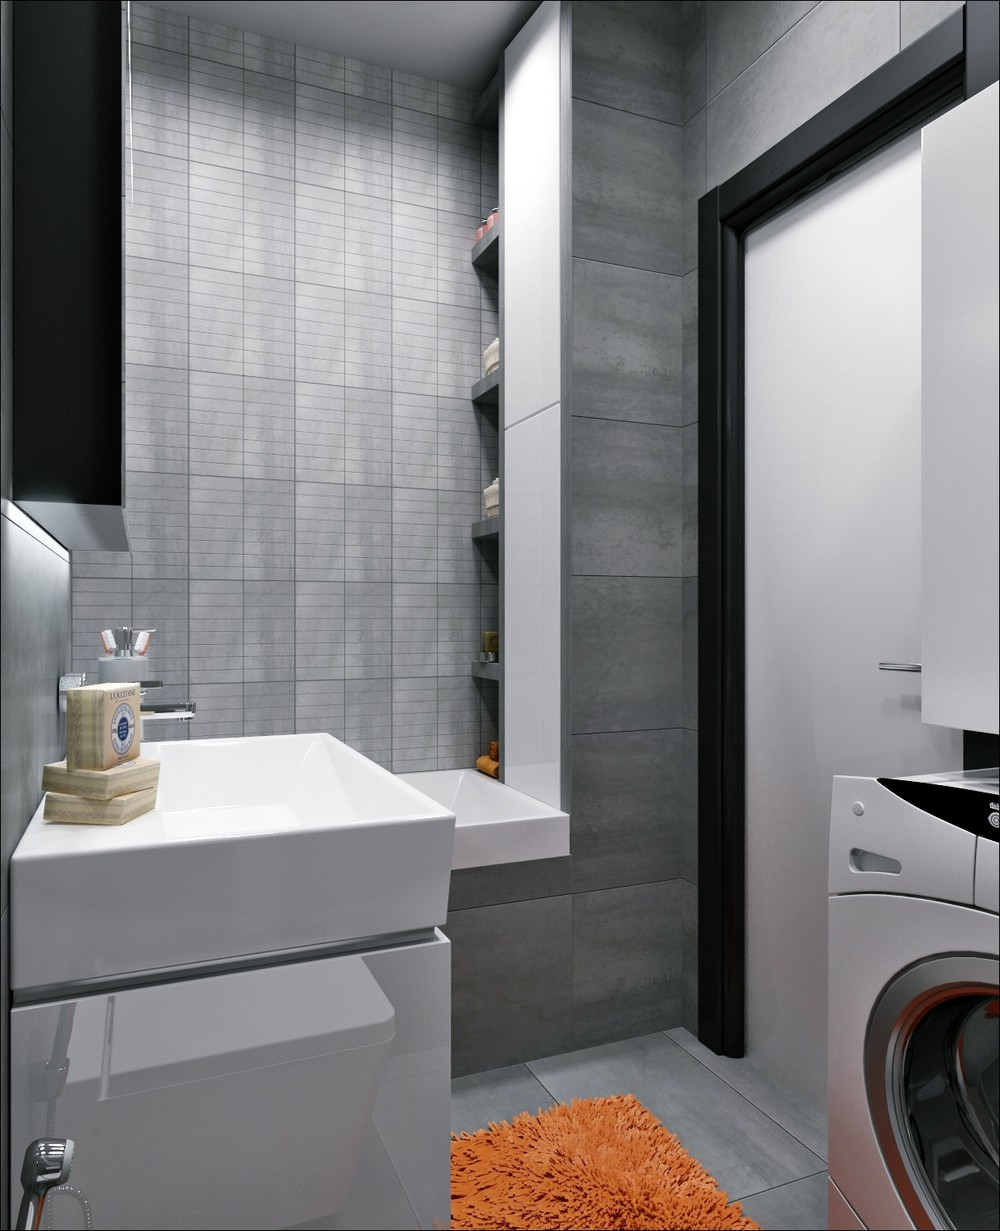 Greyscale Bathroom Design Inspiration - 3 small apartments that rock uncommon color schemes with floor plans